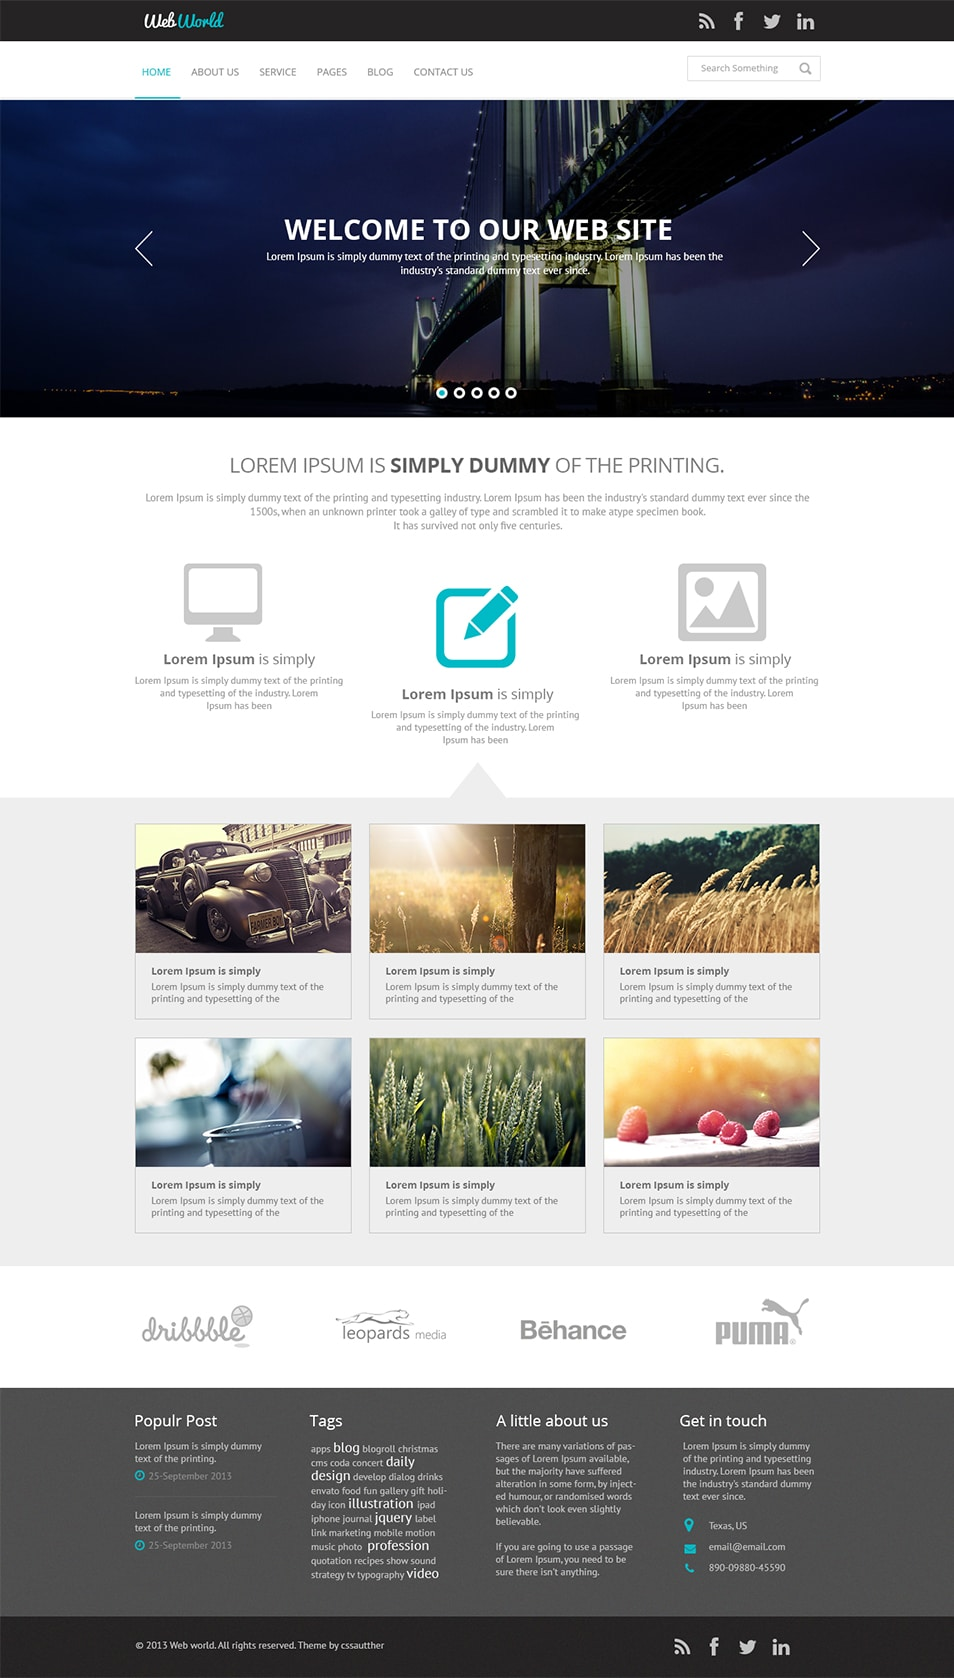 Web template psd download ltt web template psd download download source file format psd 1 free business accmission Gallery